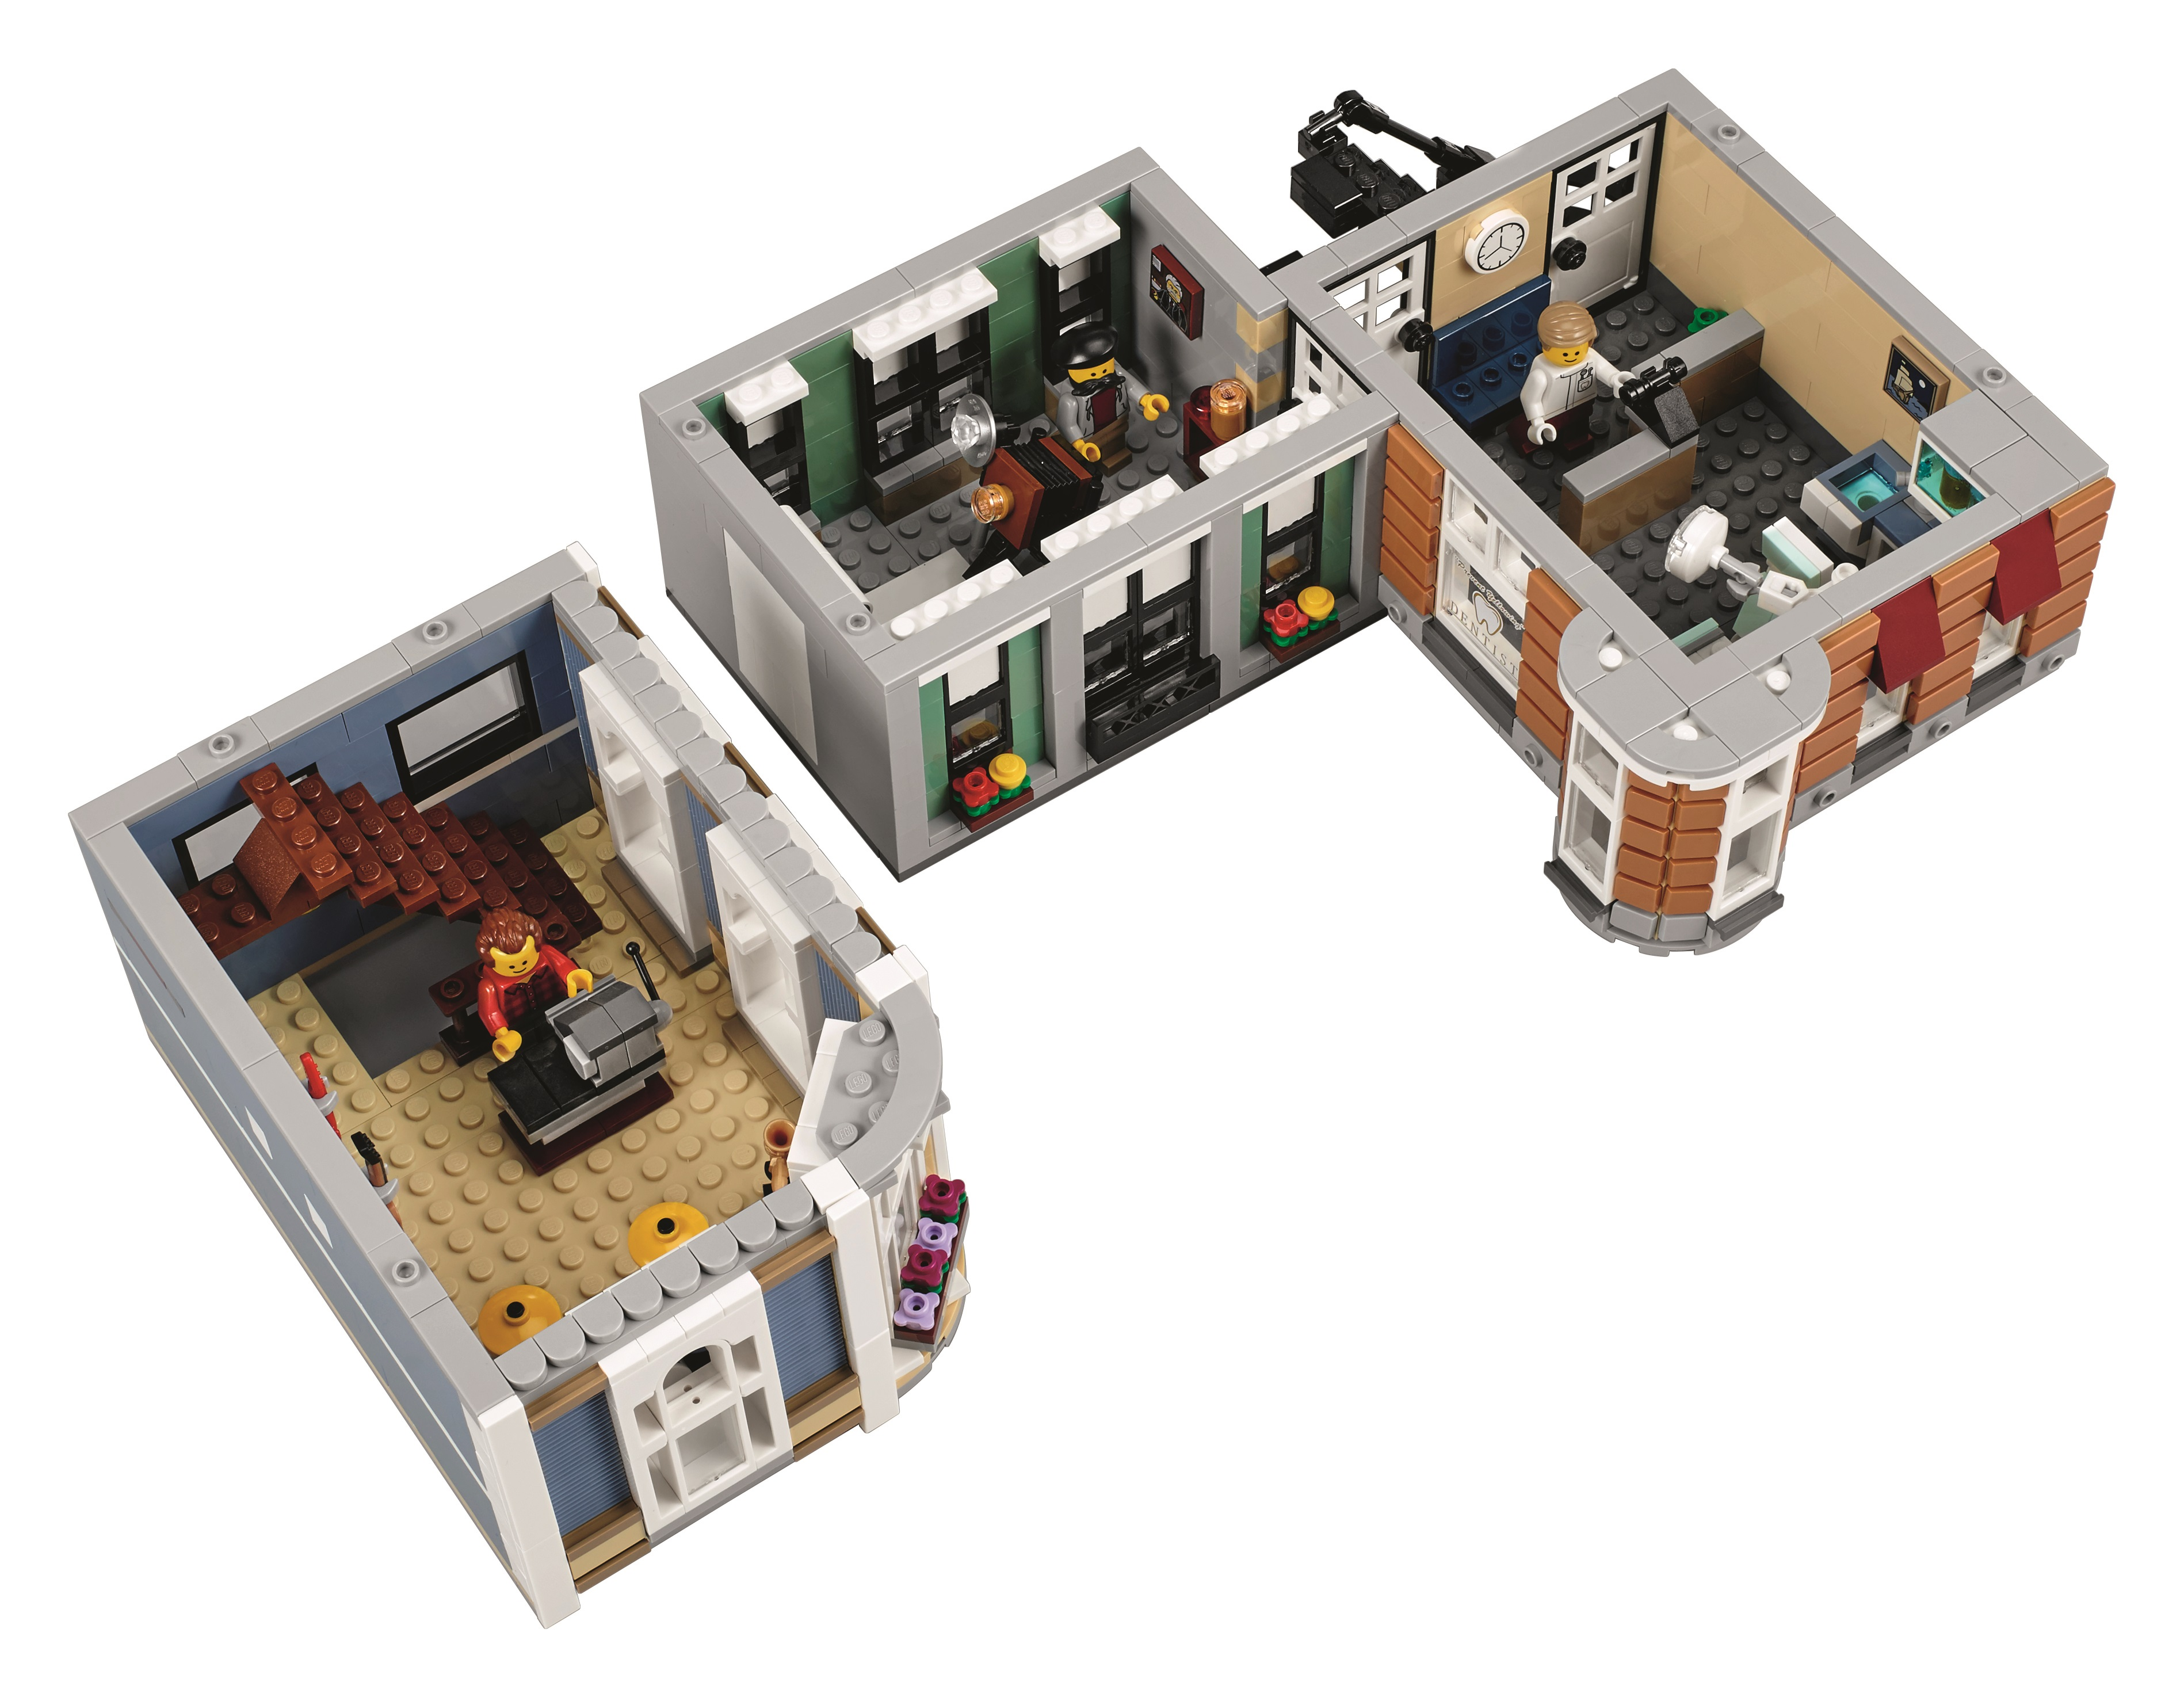 Lego 10255 Assembly Square First Floor